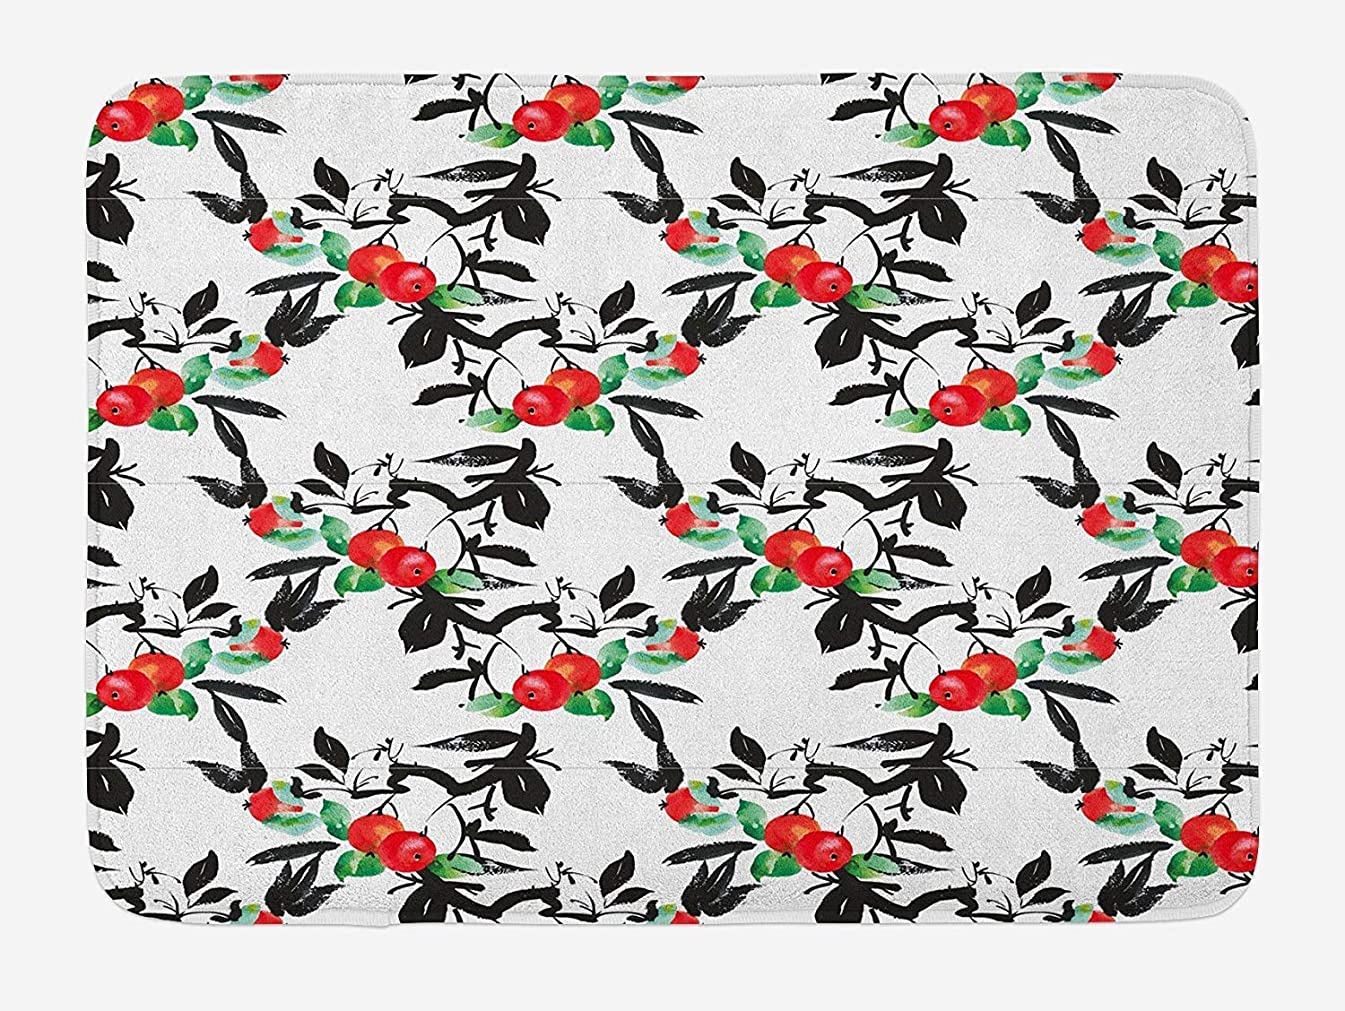 Kaickdfv Rowan Bath Mat, Vivid Mountain Berries with Watercolor Doodle Shrubs Abstract Modern, Plush Bathroom Decor Mat with Non Slip Backing, 23.6 W X 15.7 W Inches, Dark Coral Green Black